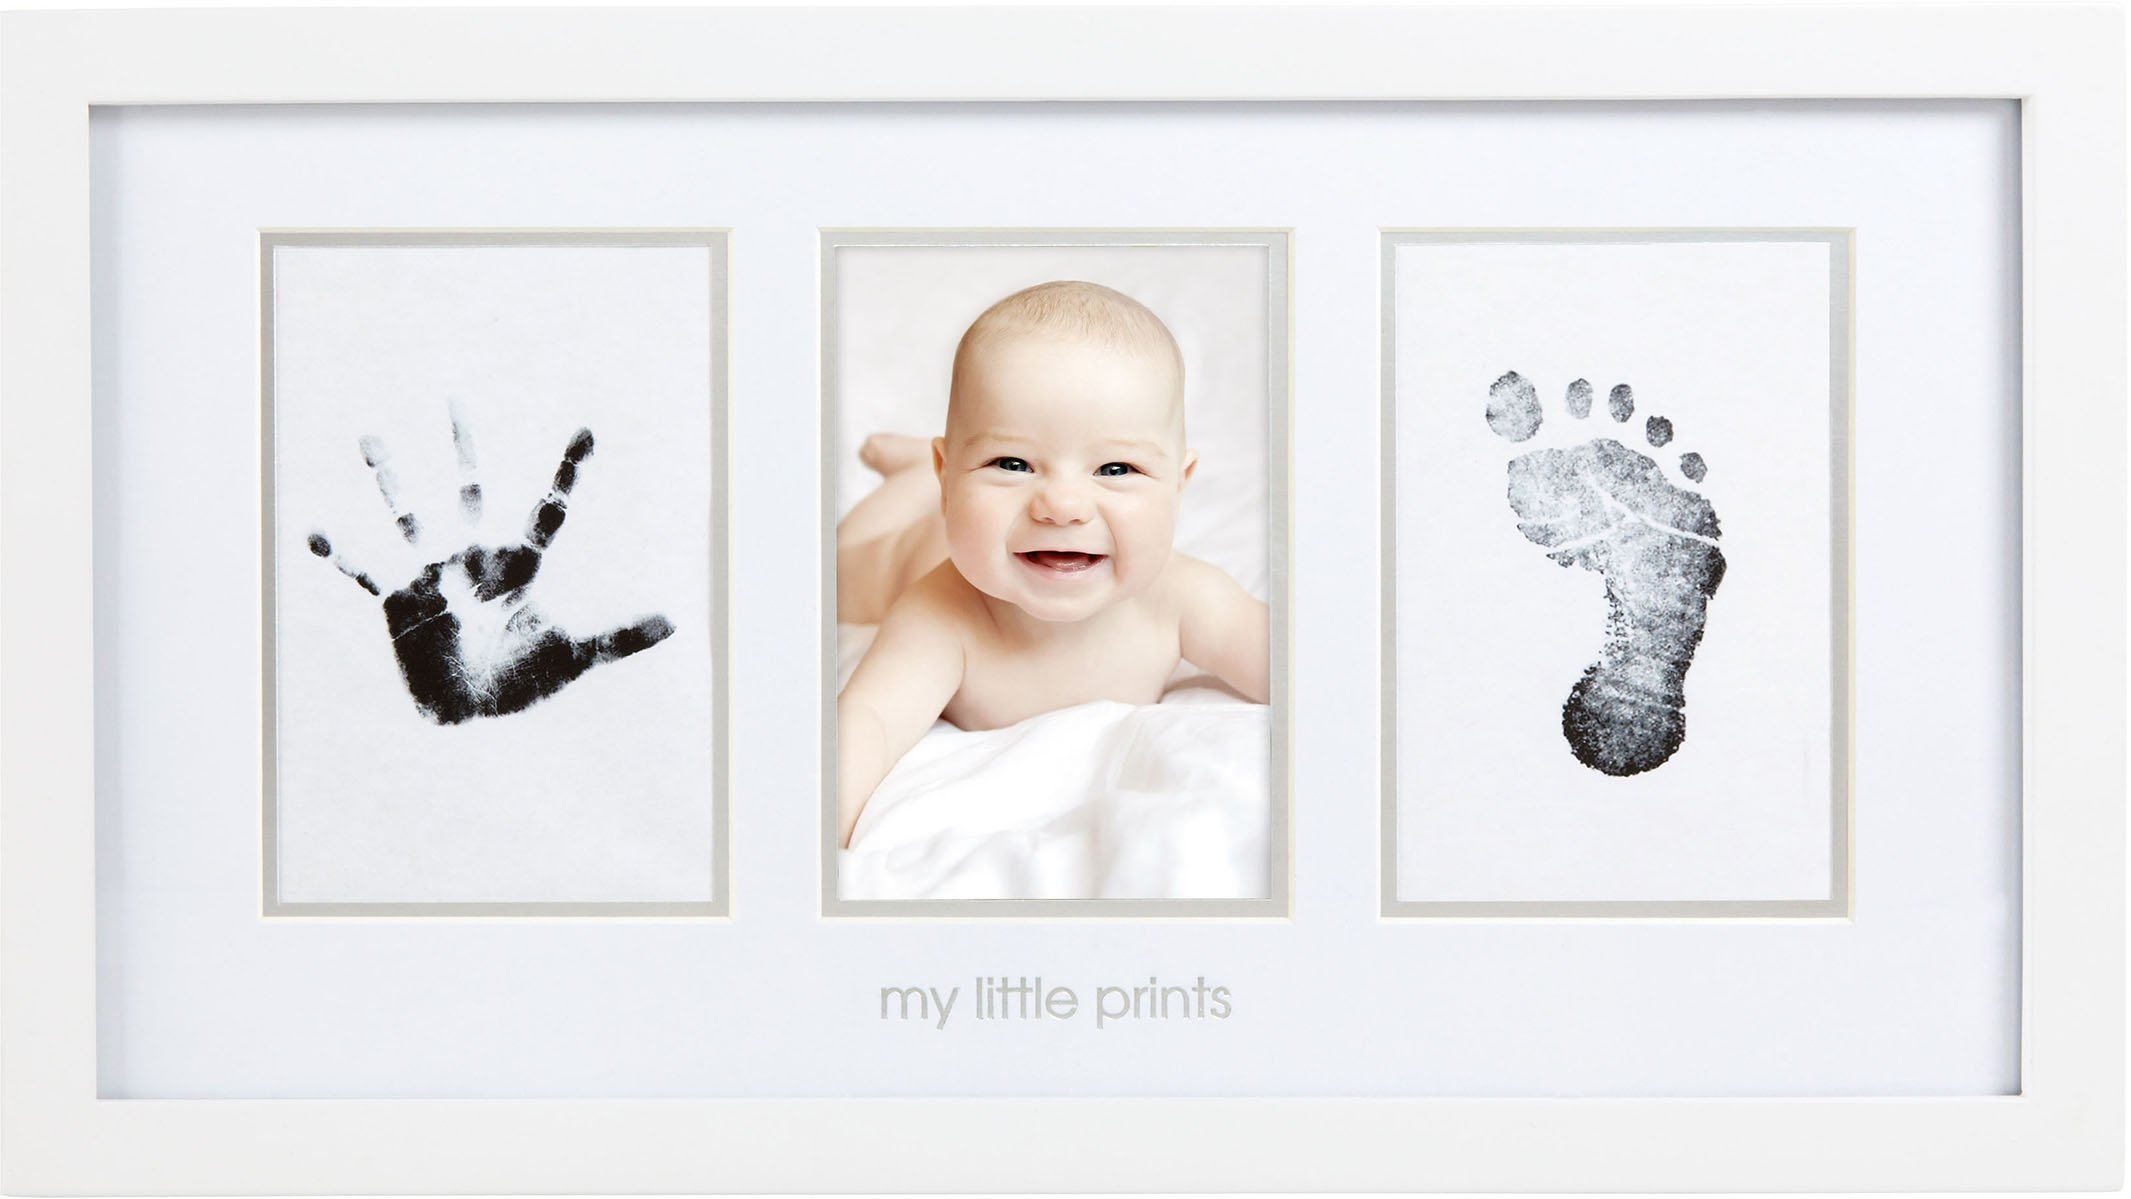 Pearhead Babyprints Newborn Baby Handprint and Footprint Photo Frame Kit with Included Safe for Baby Clean-Touch Ink Pad, White